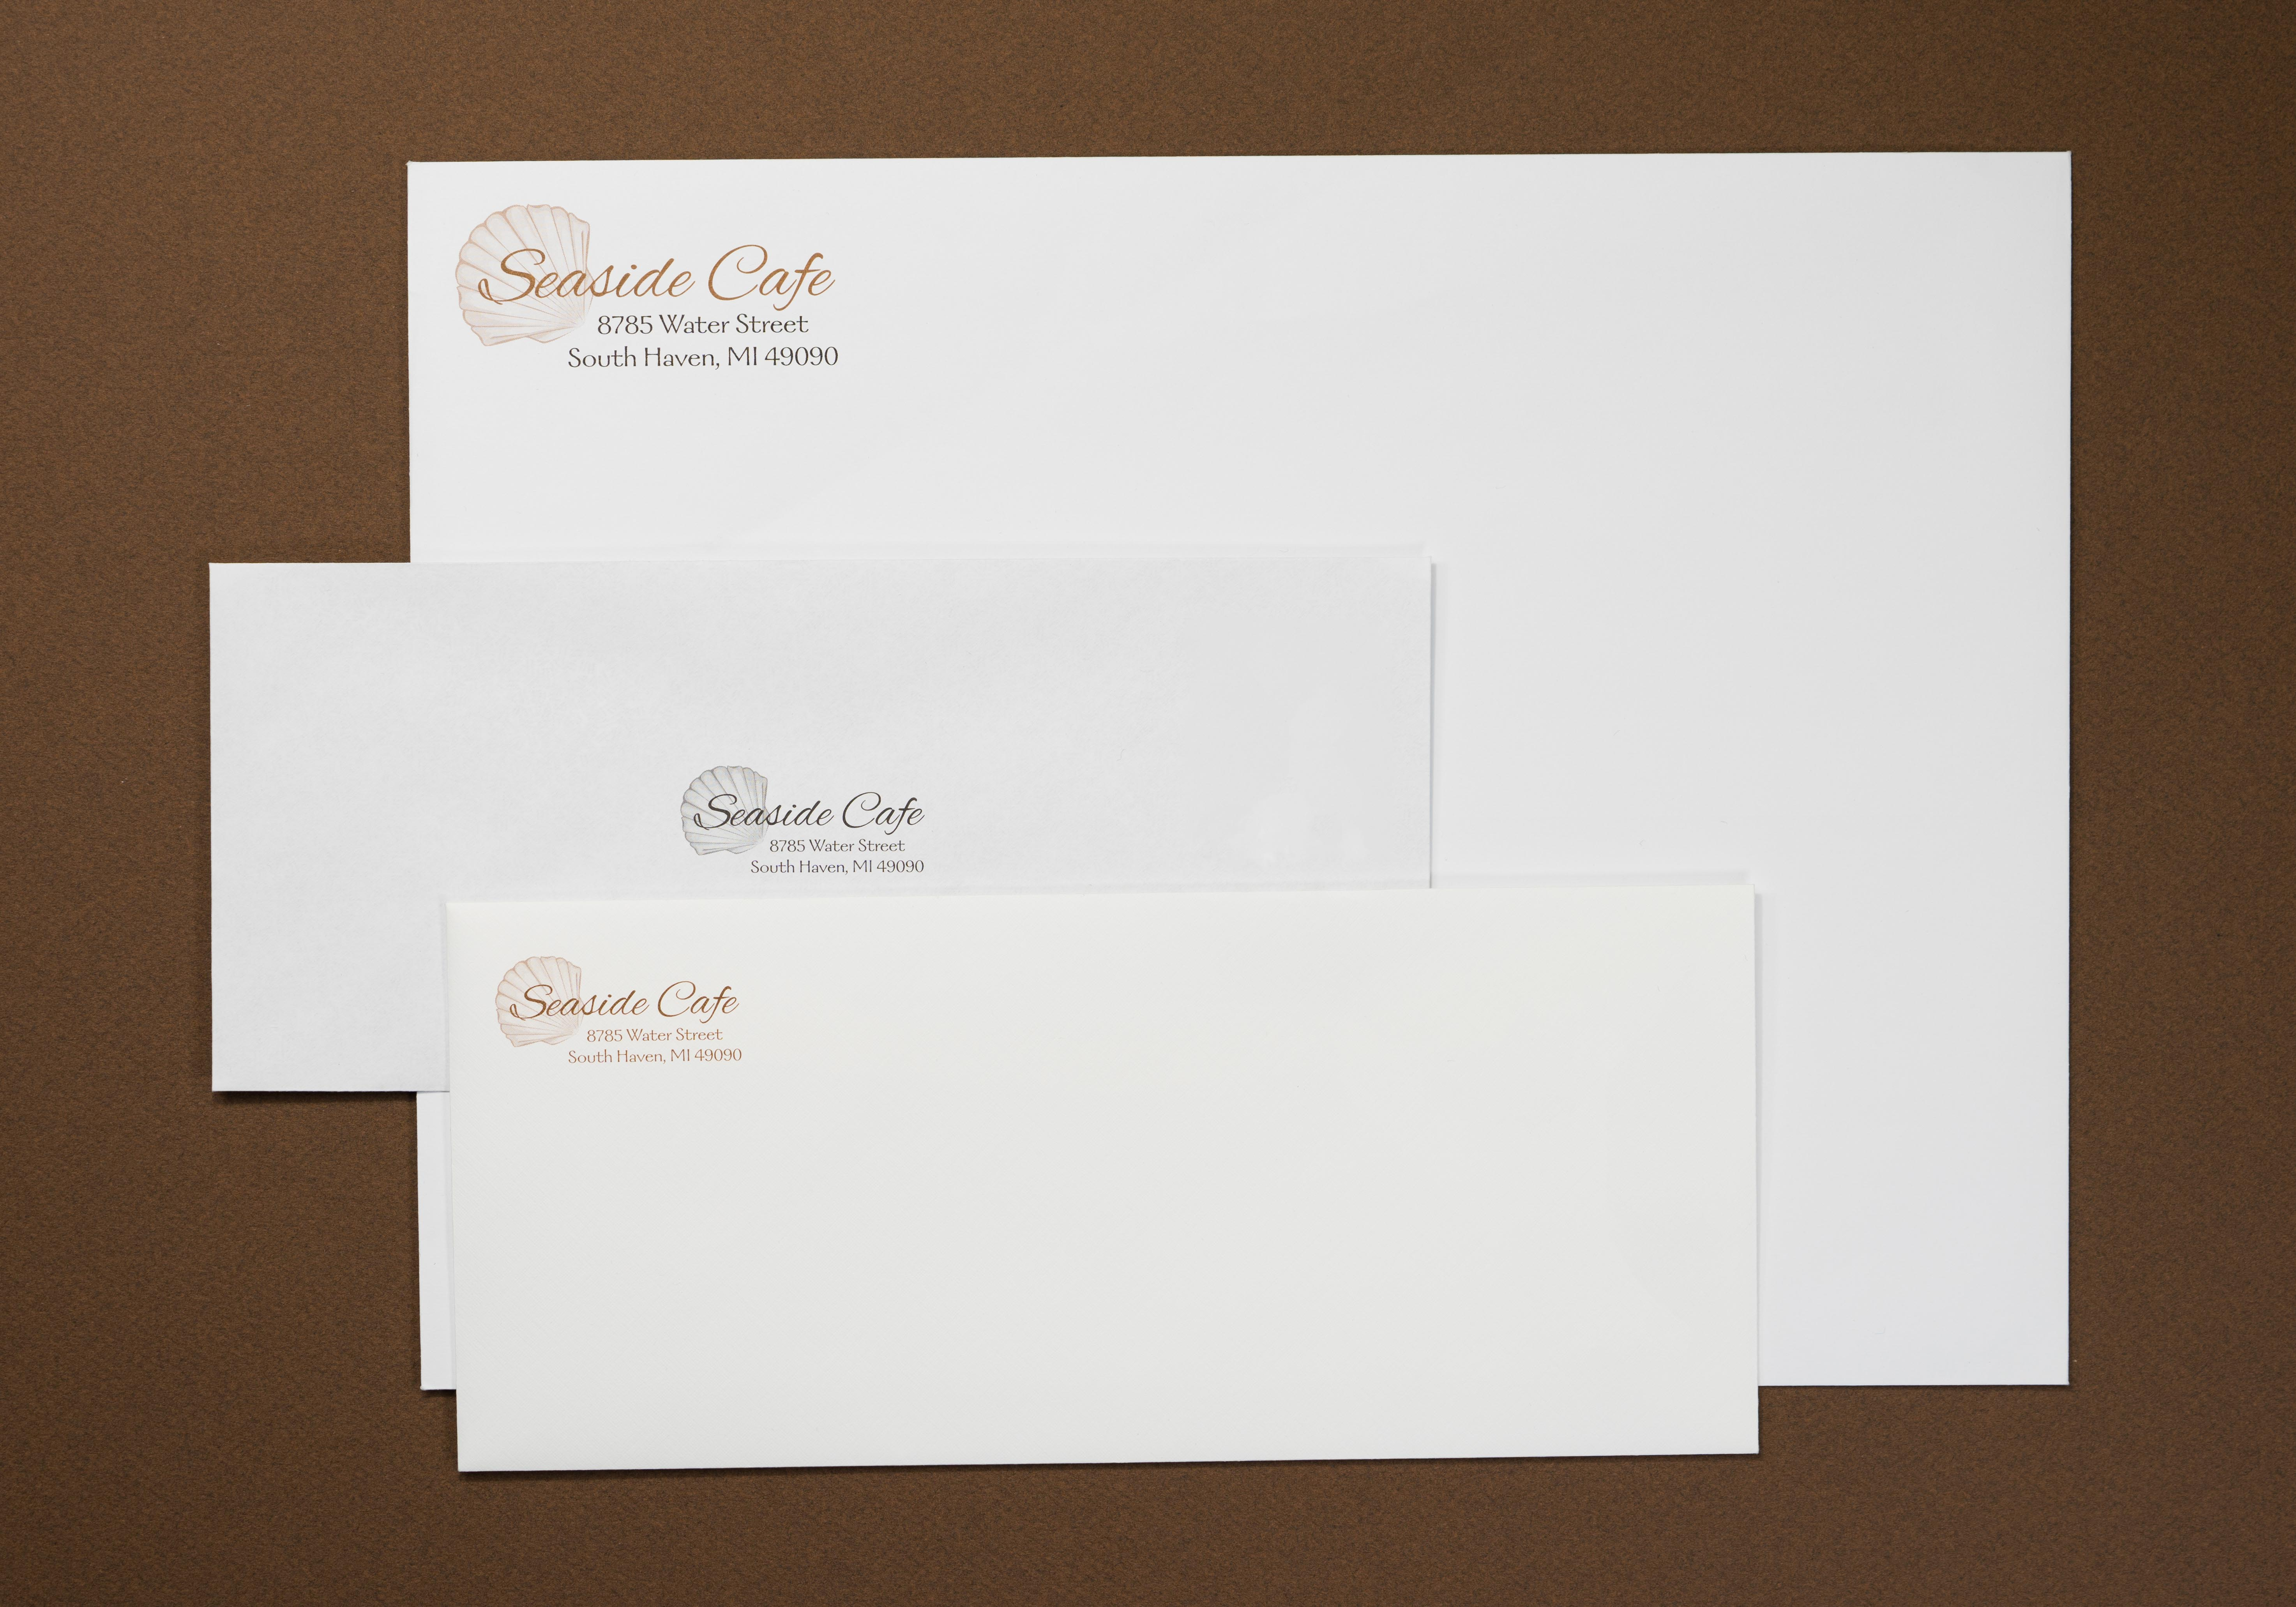 Business cards custom business cards card printing custom business envelopes reheart Gallery